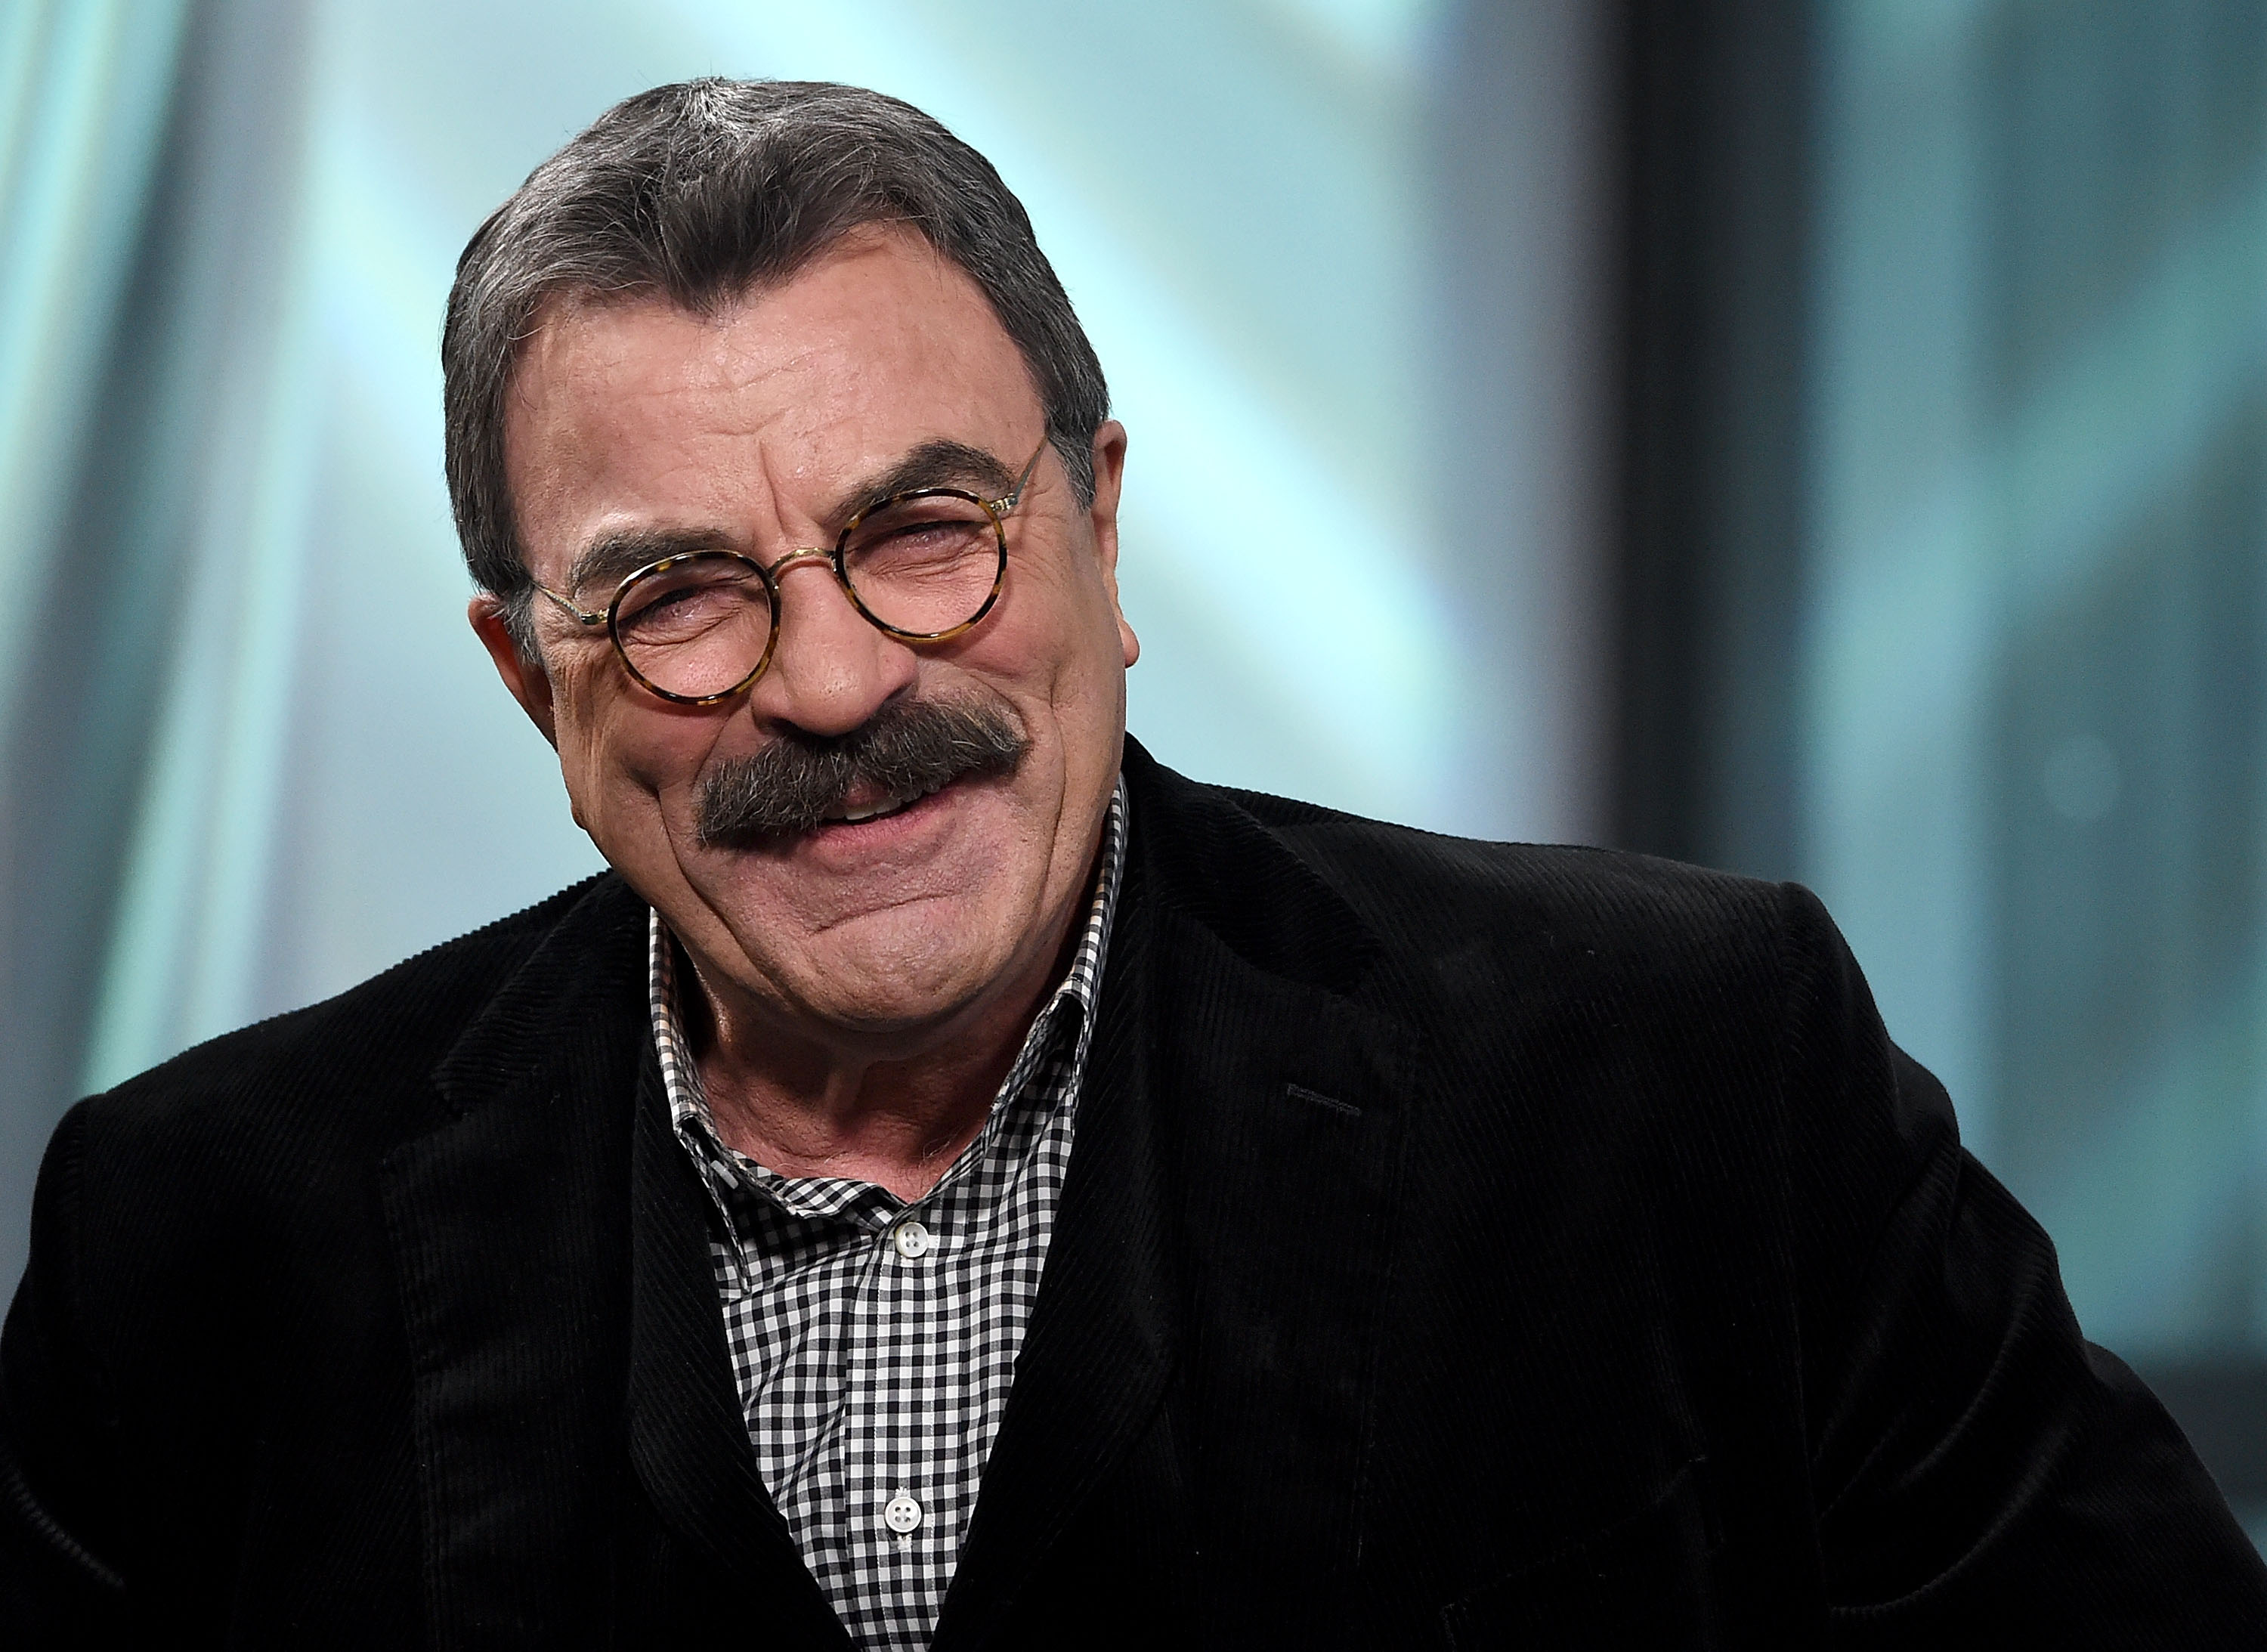 Build Presents Tom Selleck Discussing His Show 'Blue Bloods